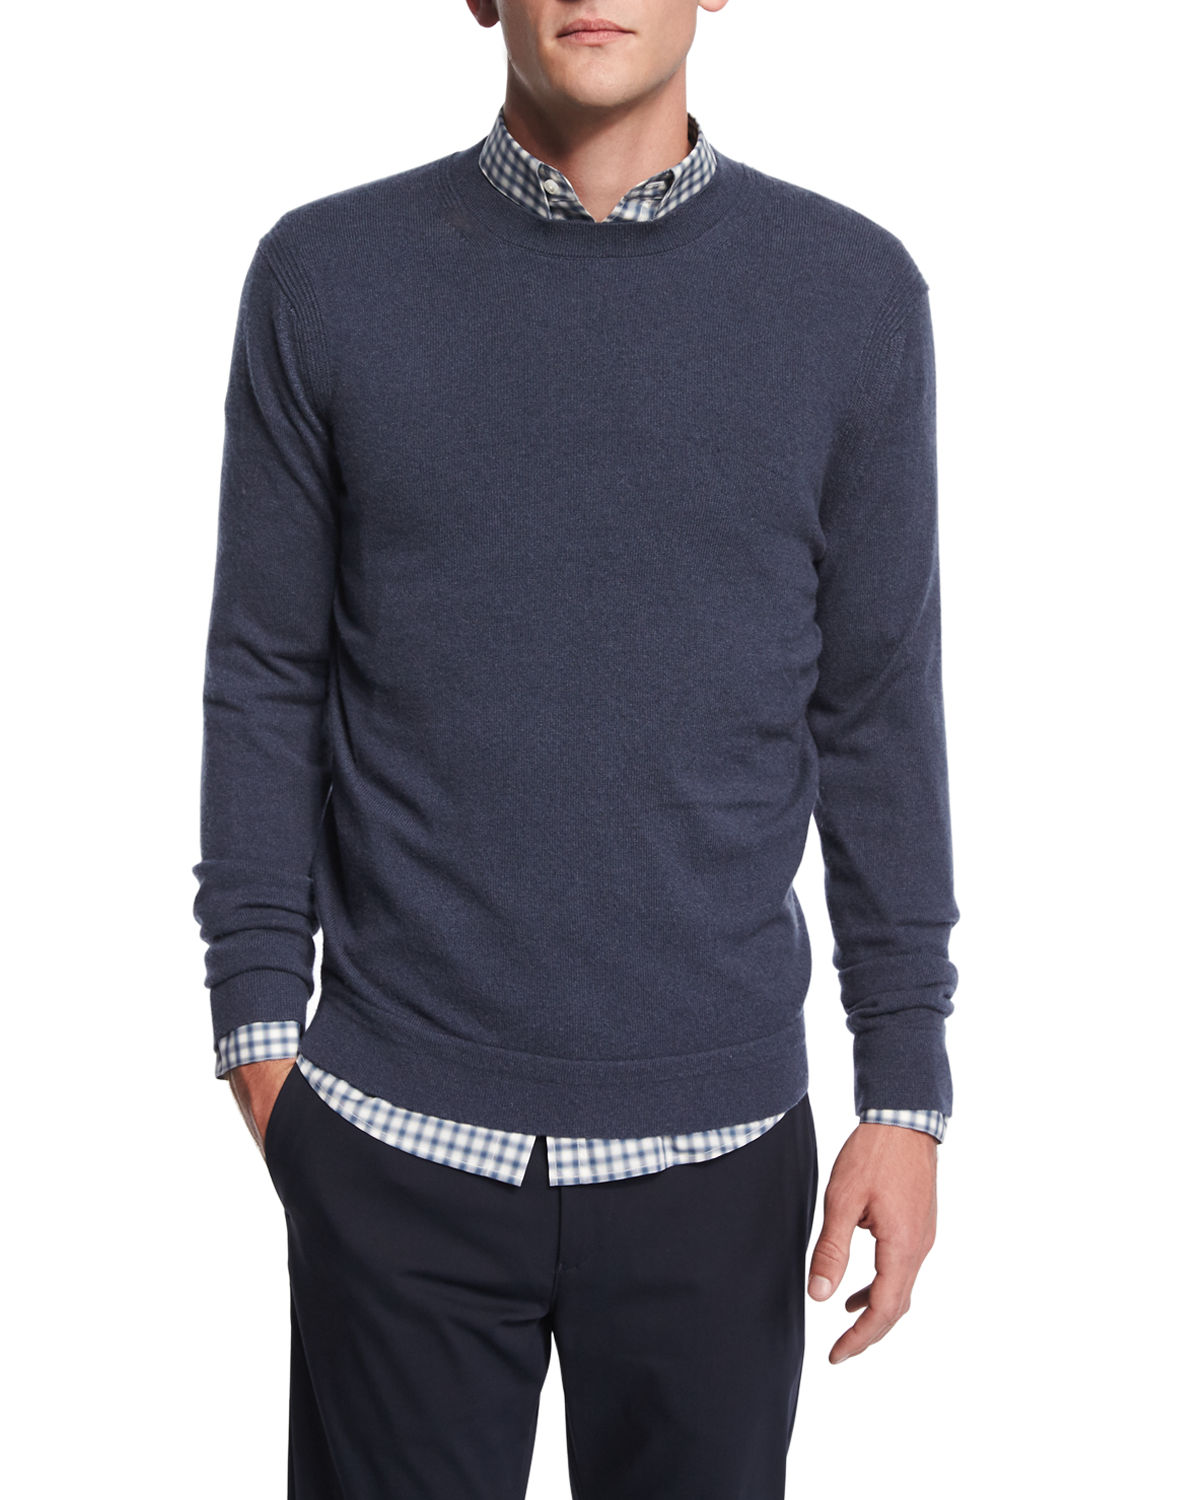 Vetel Long-Sleeve Cashmere Sweater